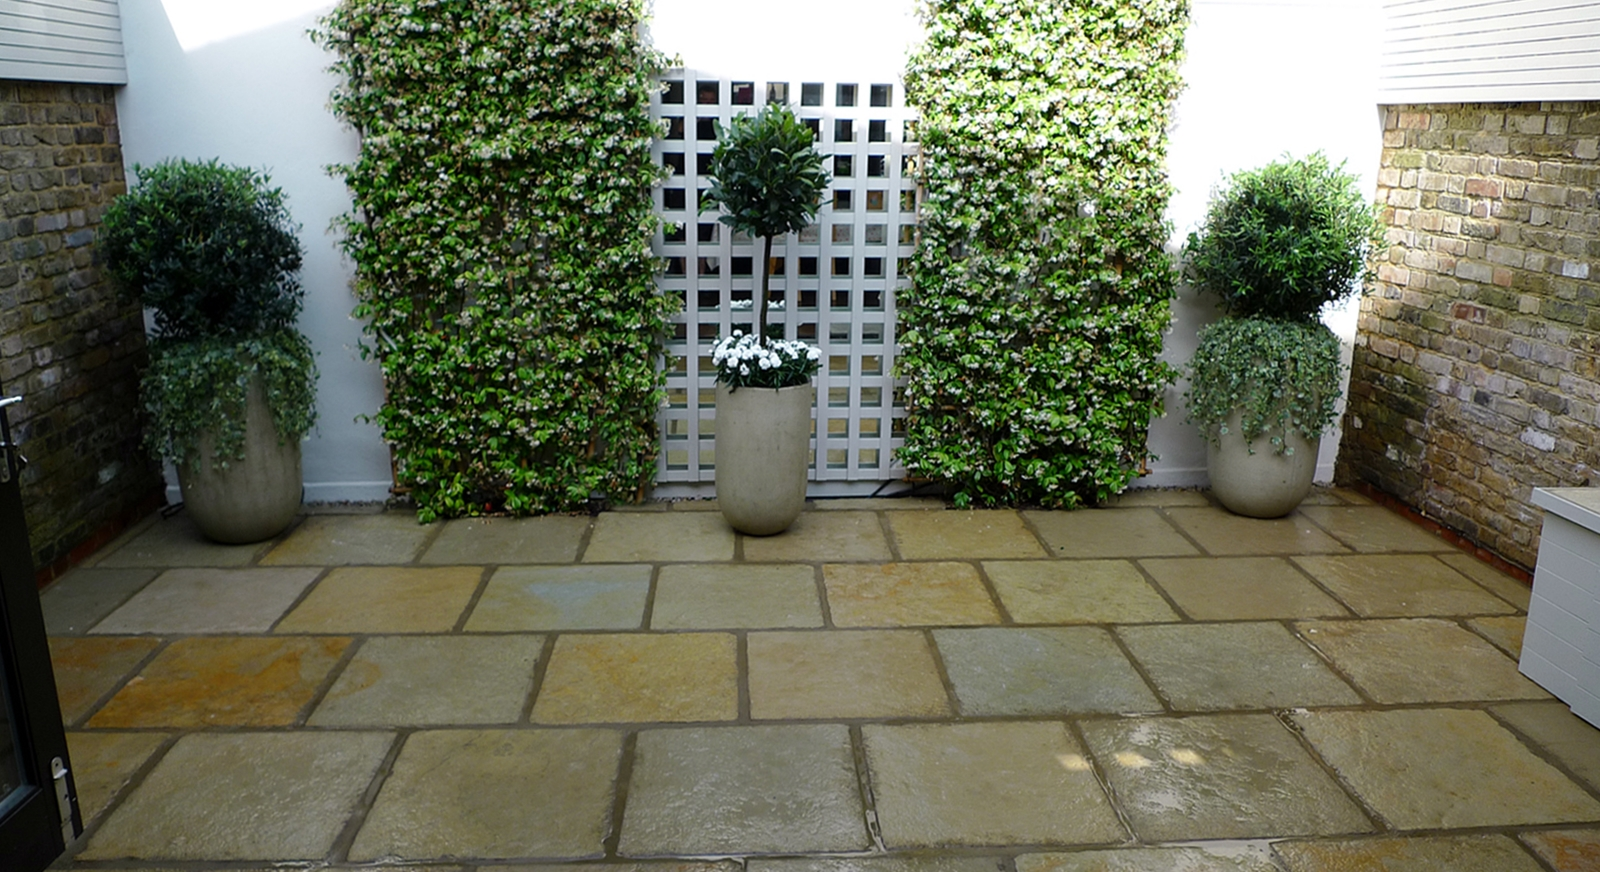 garden design and designer fulham chelsea battersea wandsworth balham clapham london